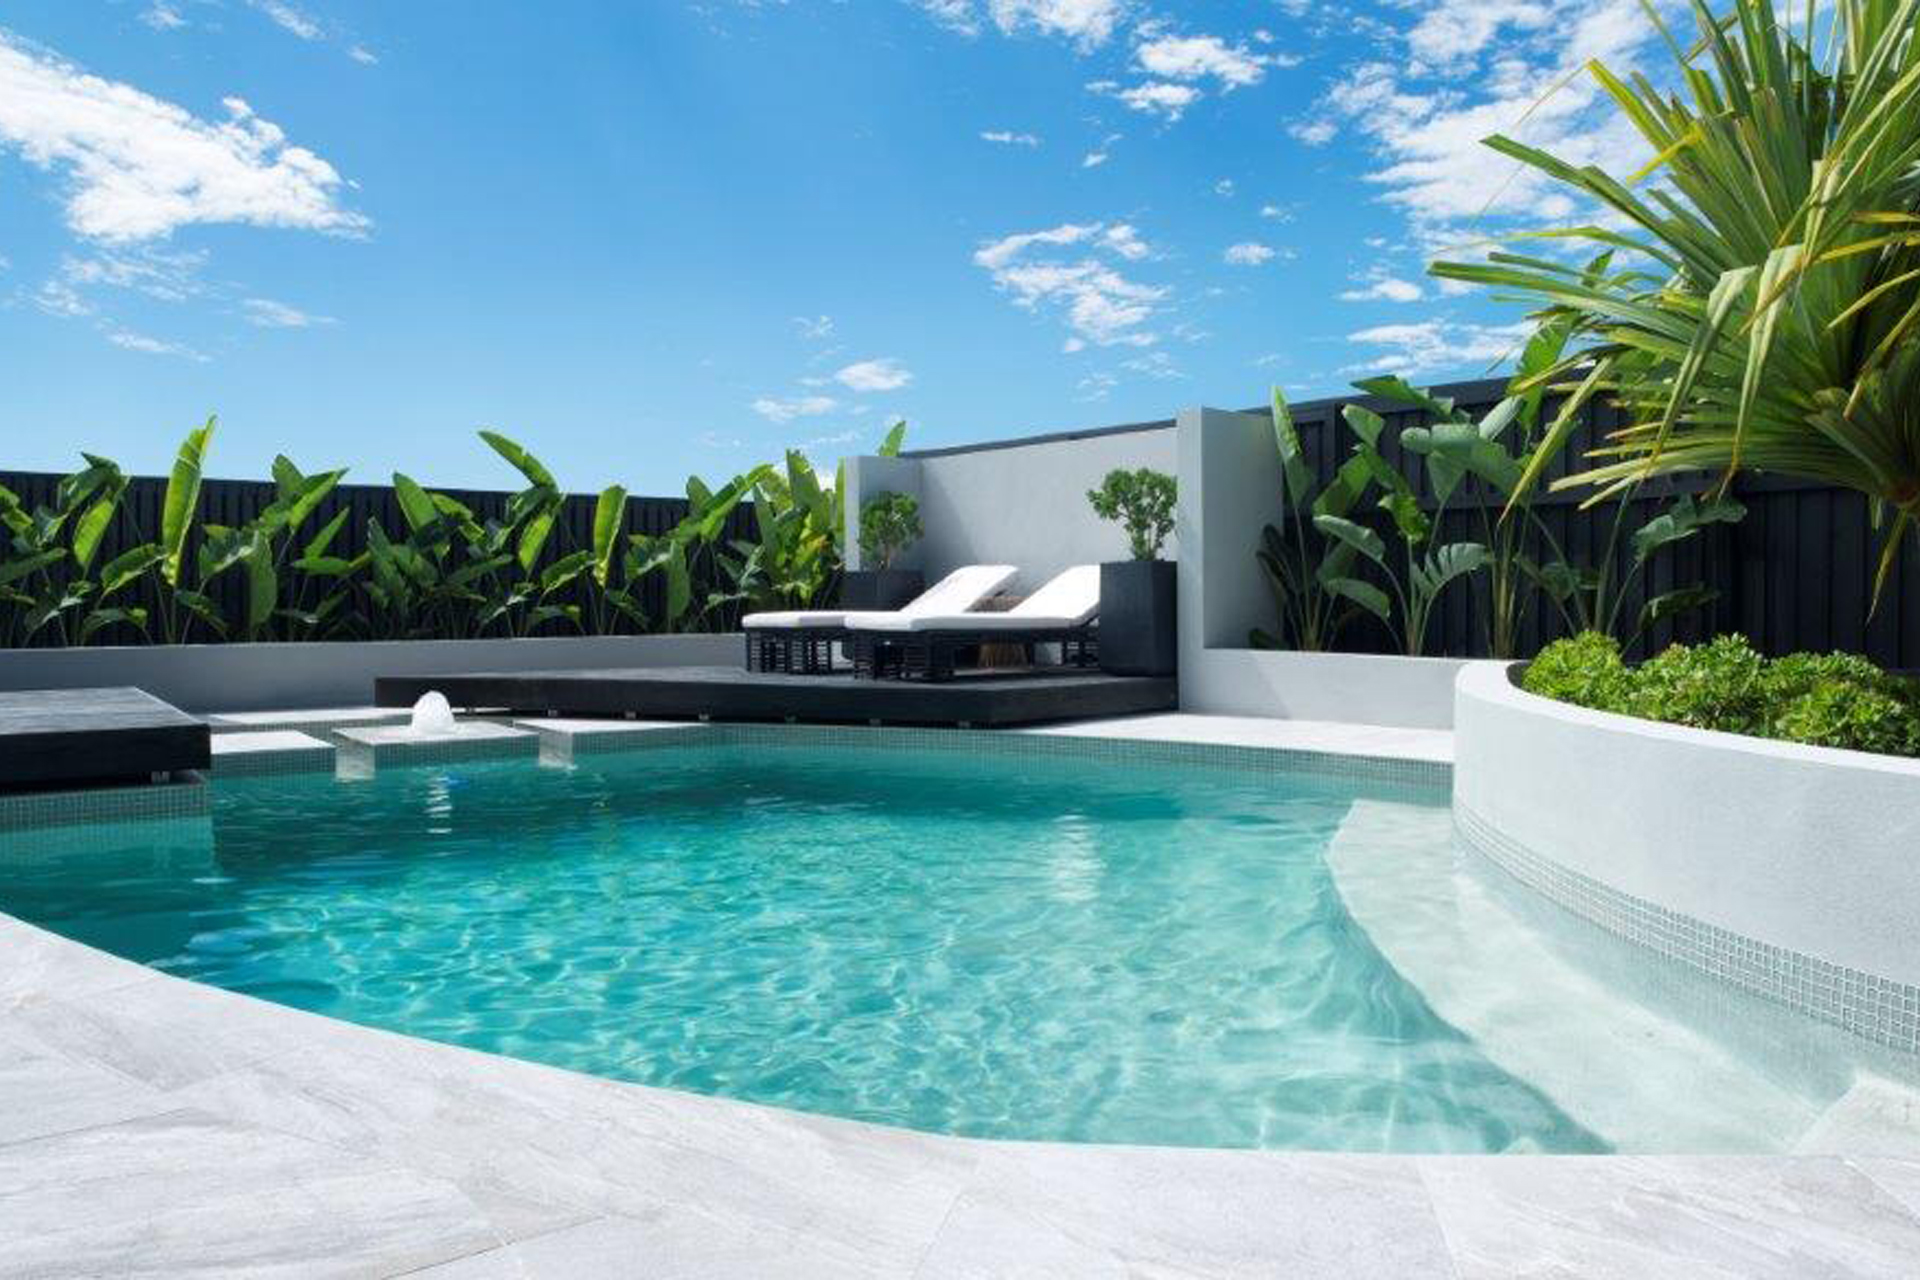 LUXURY CANAL HOME WITH POOL & OCEAN ACCESS